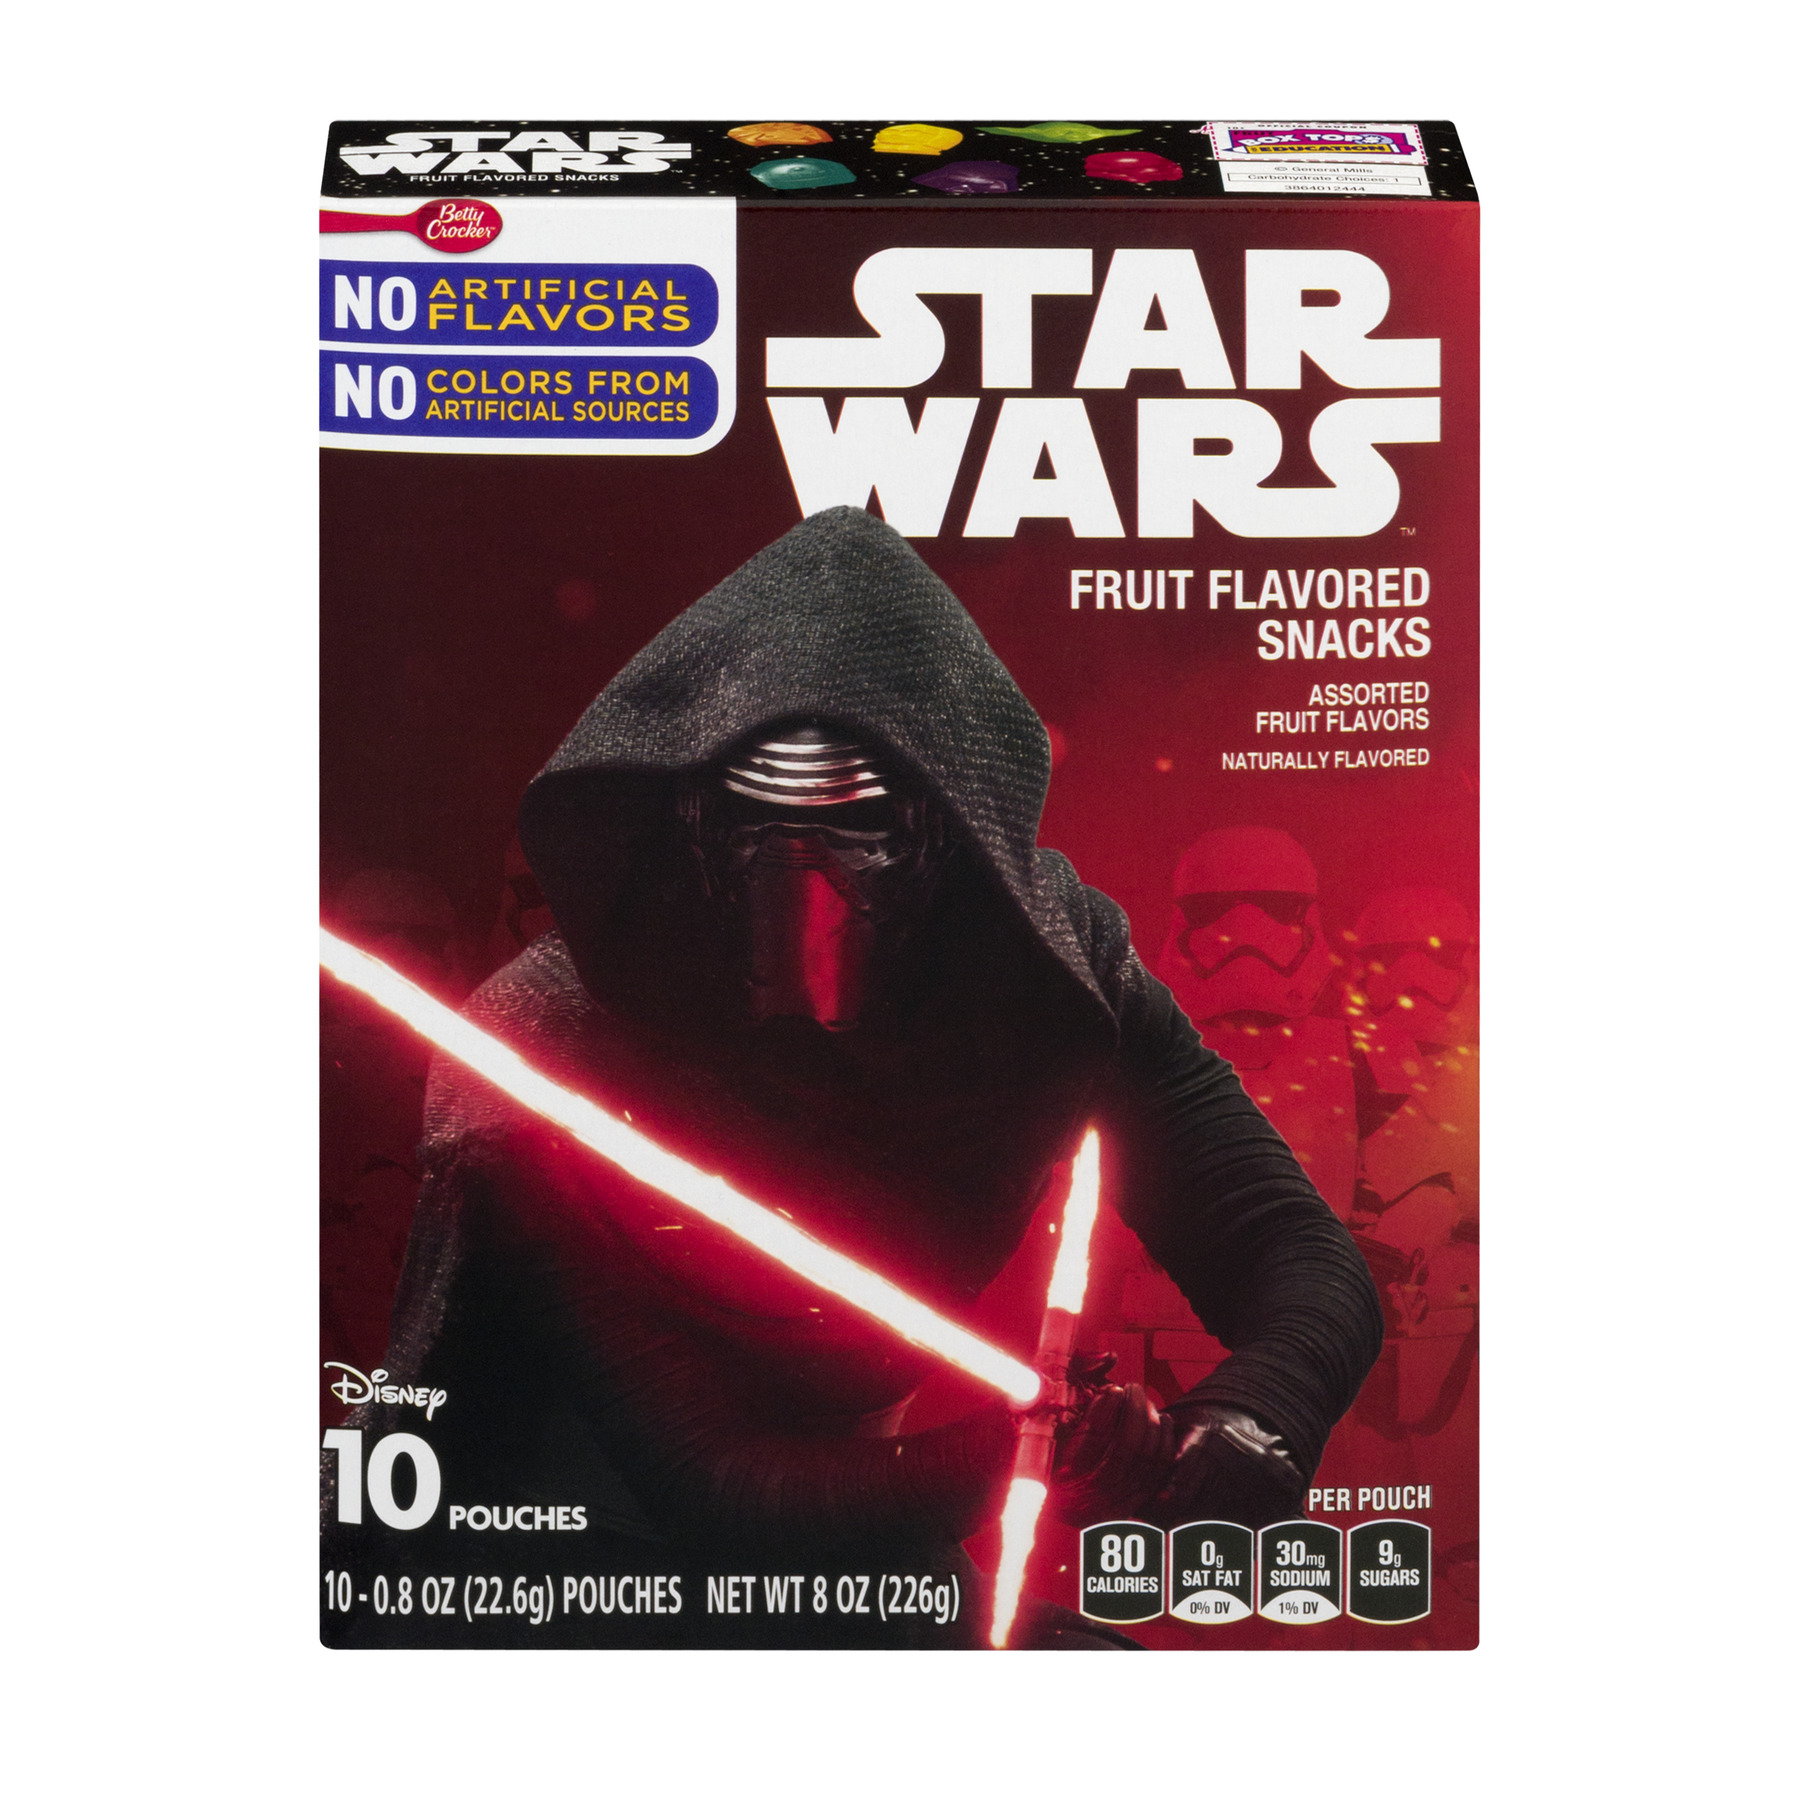 Betty Crocker Star Wars Fruit Flavored Snacks Assorted Flavors 10 - 0.8 oz Pouches